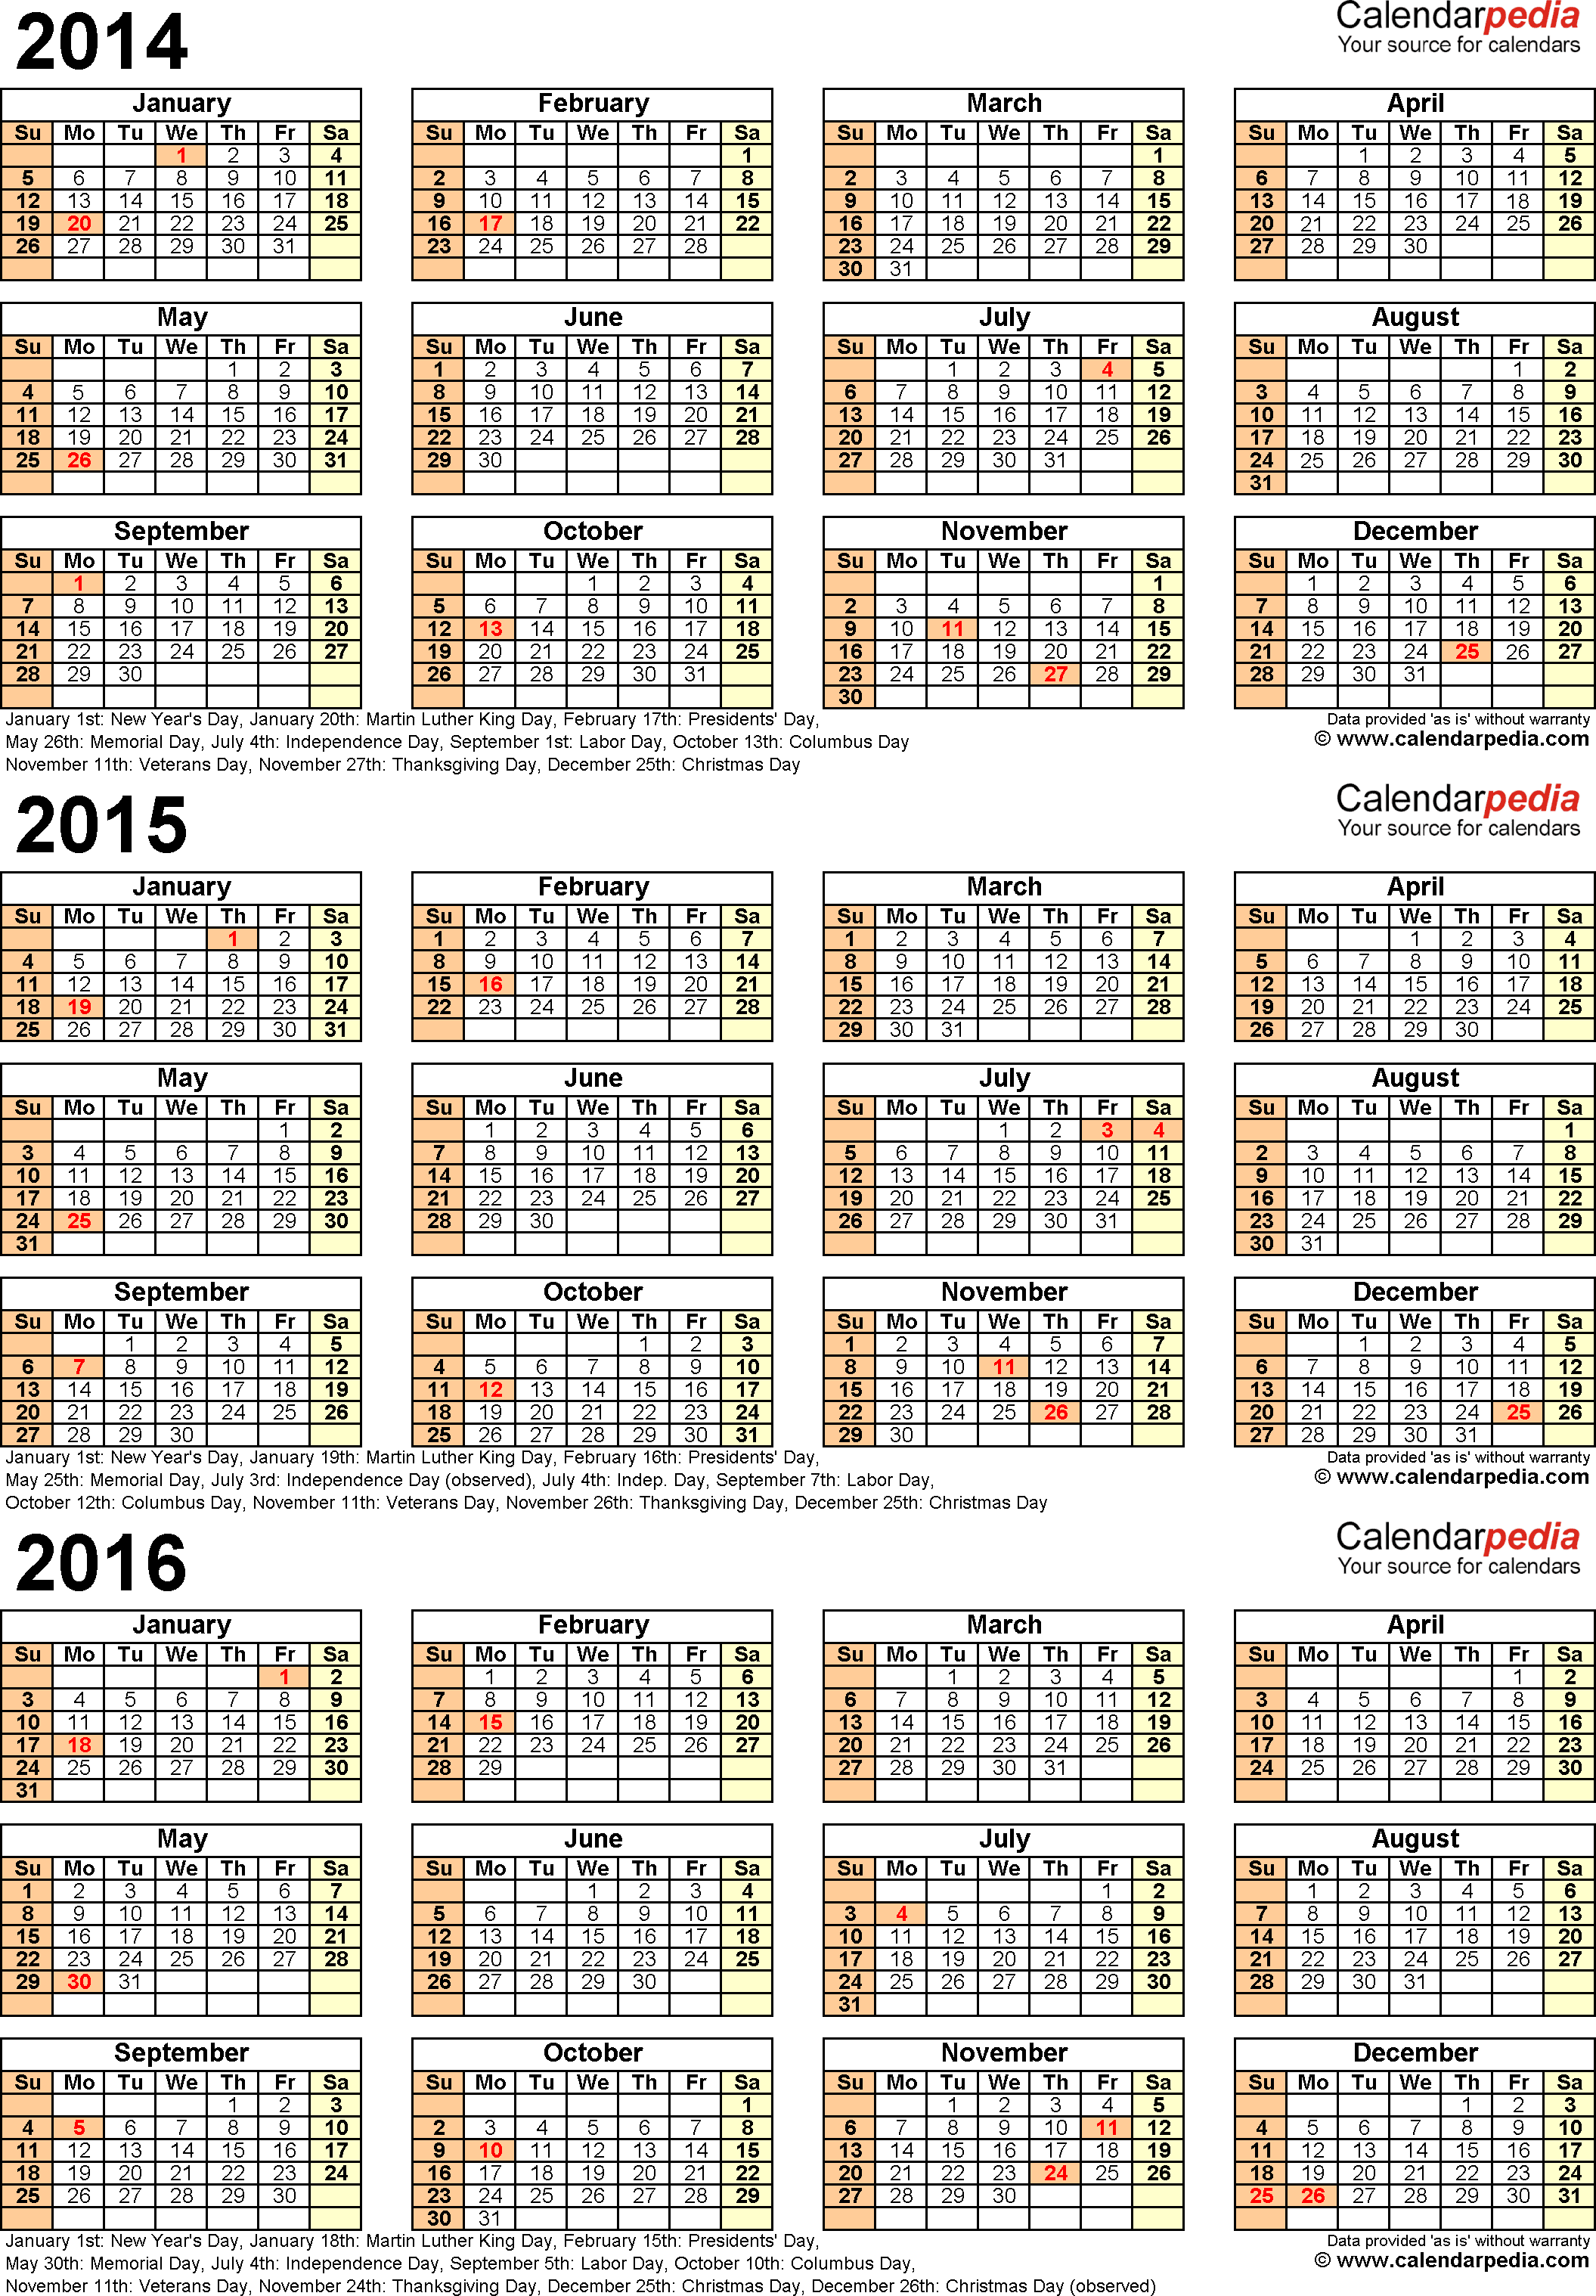 Template 4: PDF template for three year calendar 2014-2016 (portrait orientation, 1 page)